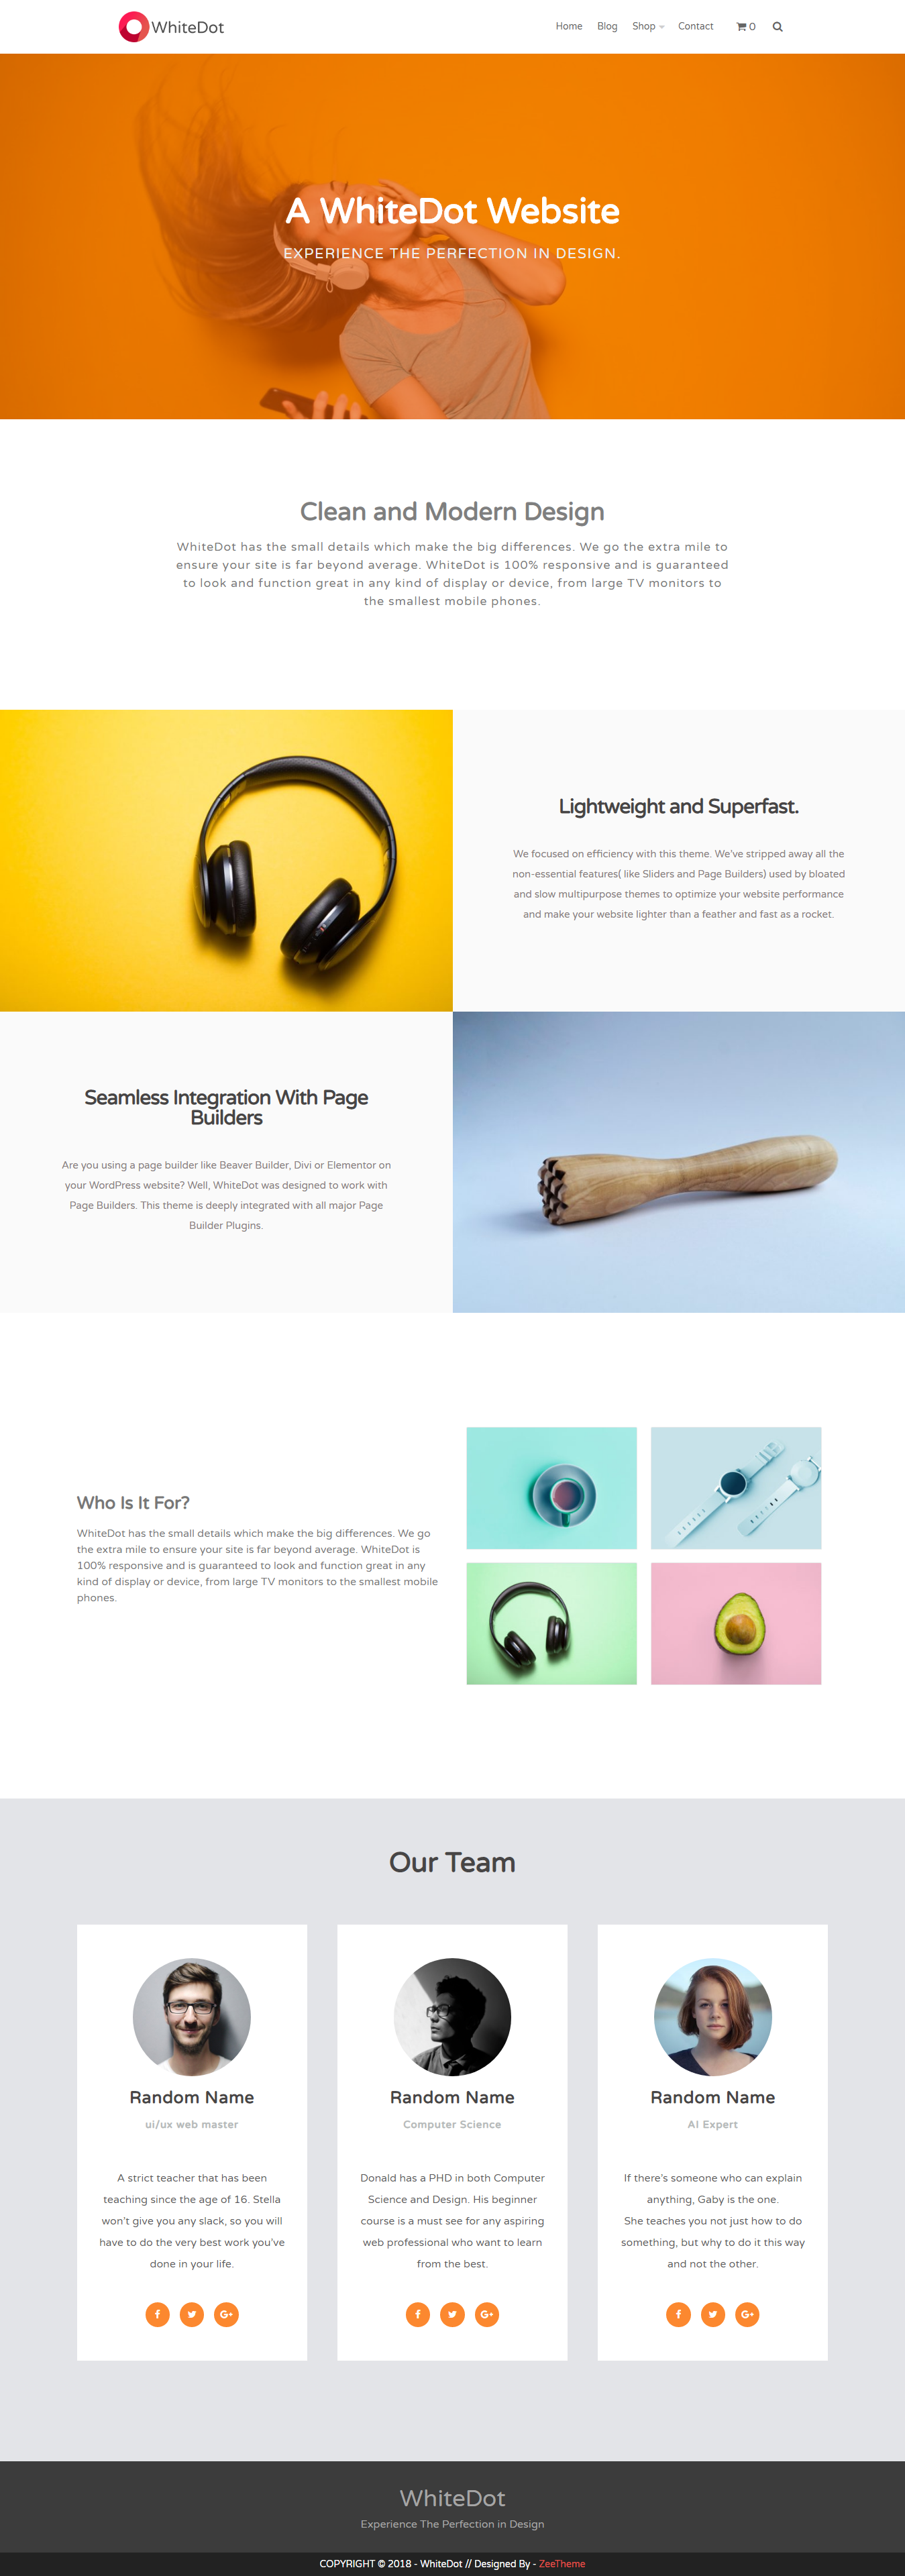 WhiteDot - Best Free BuddyPress WordPress Theme